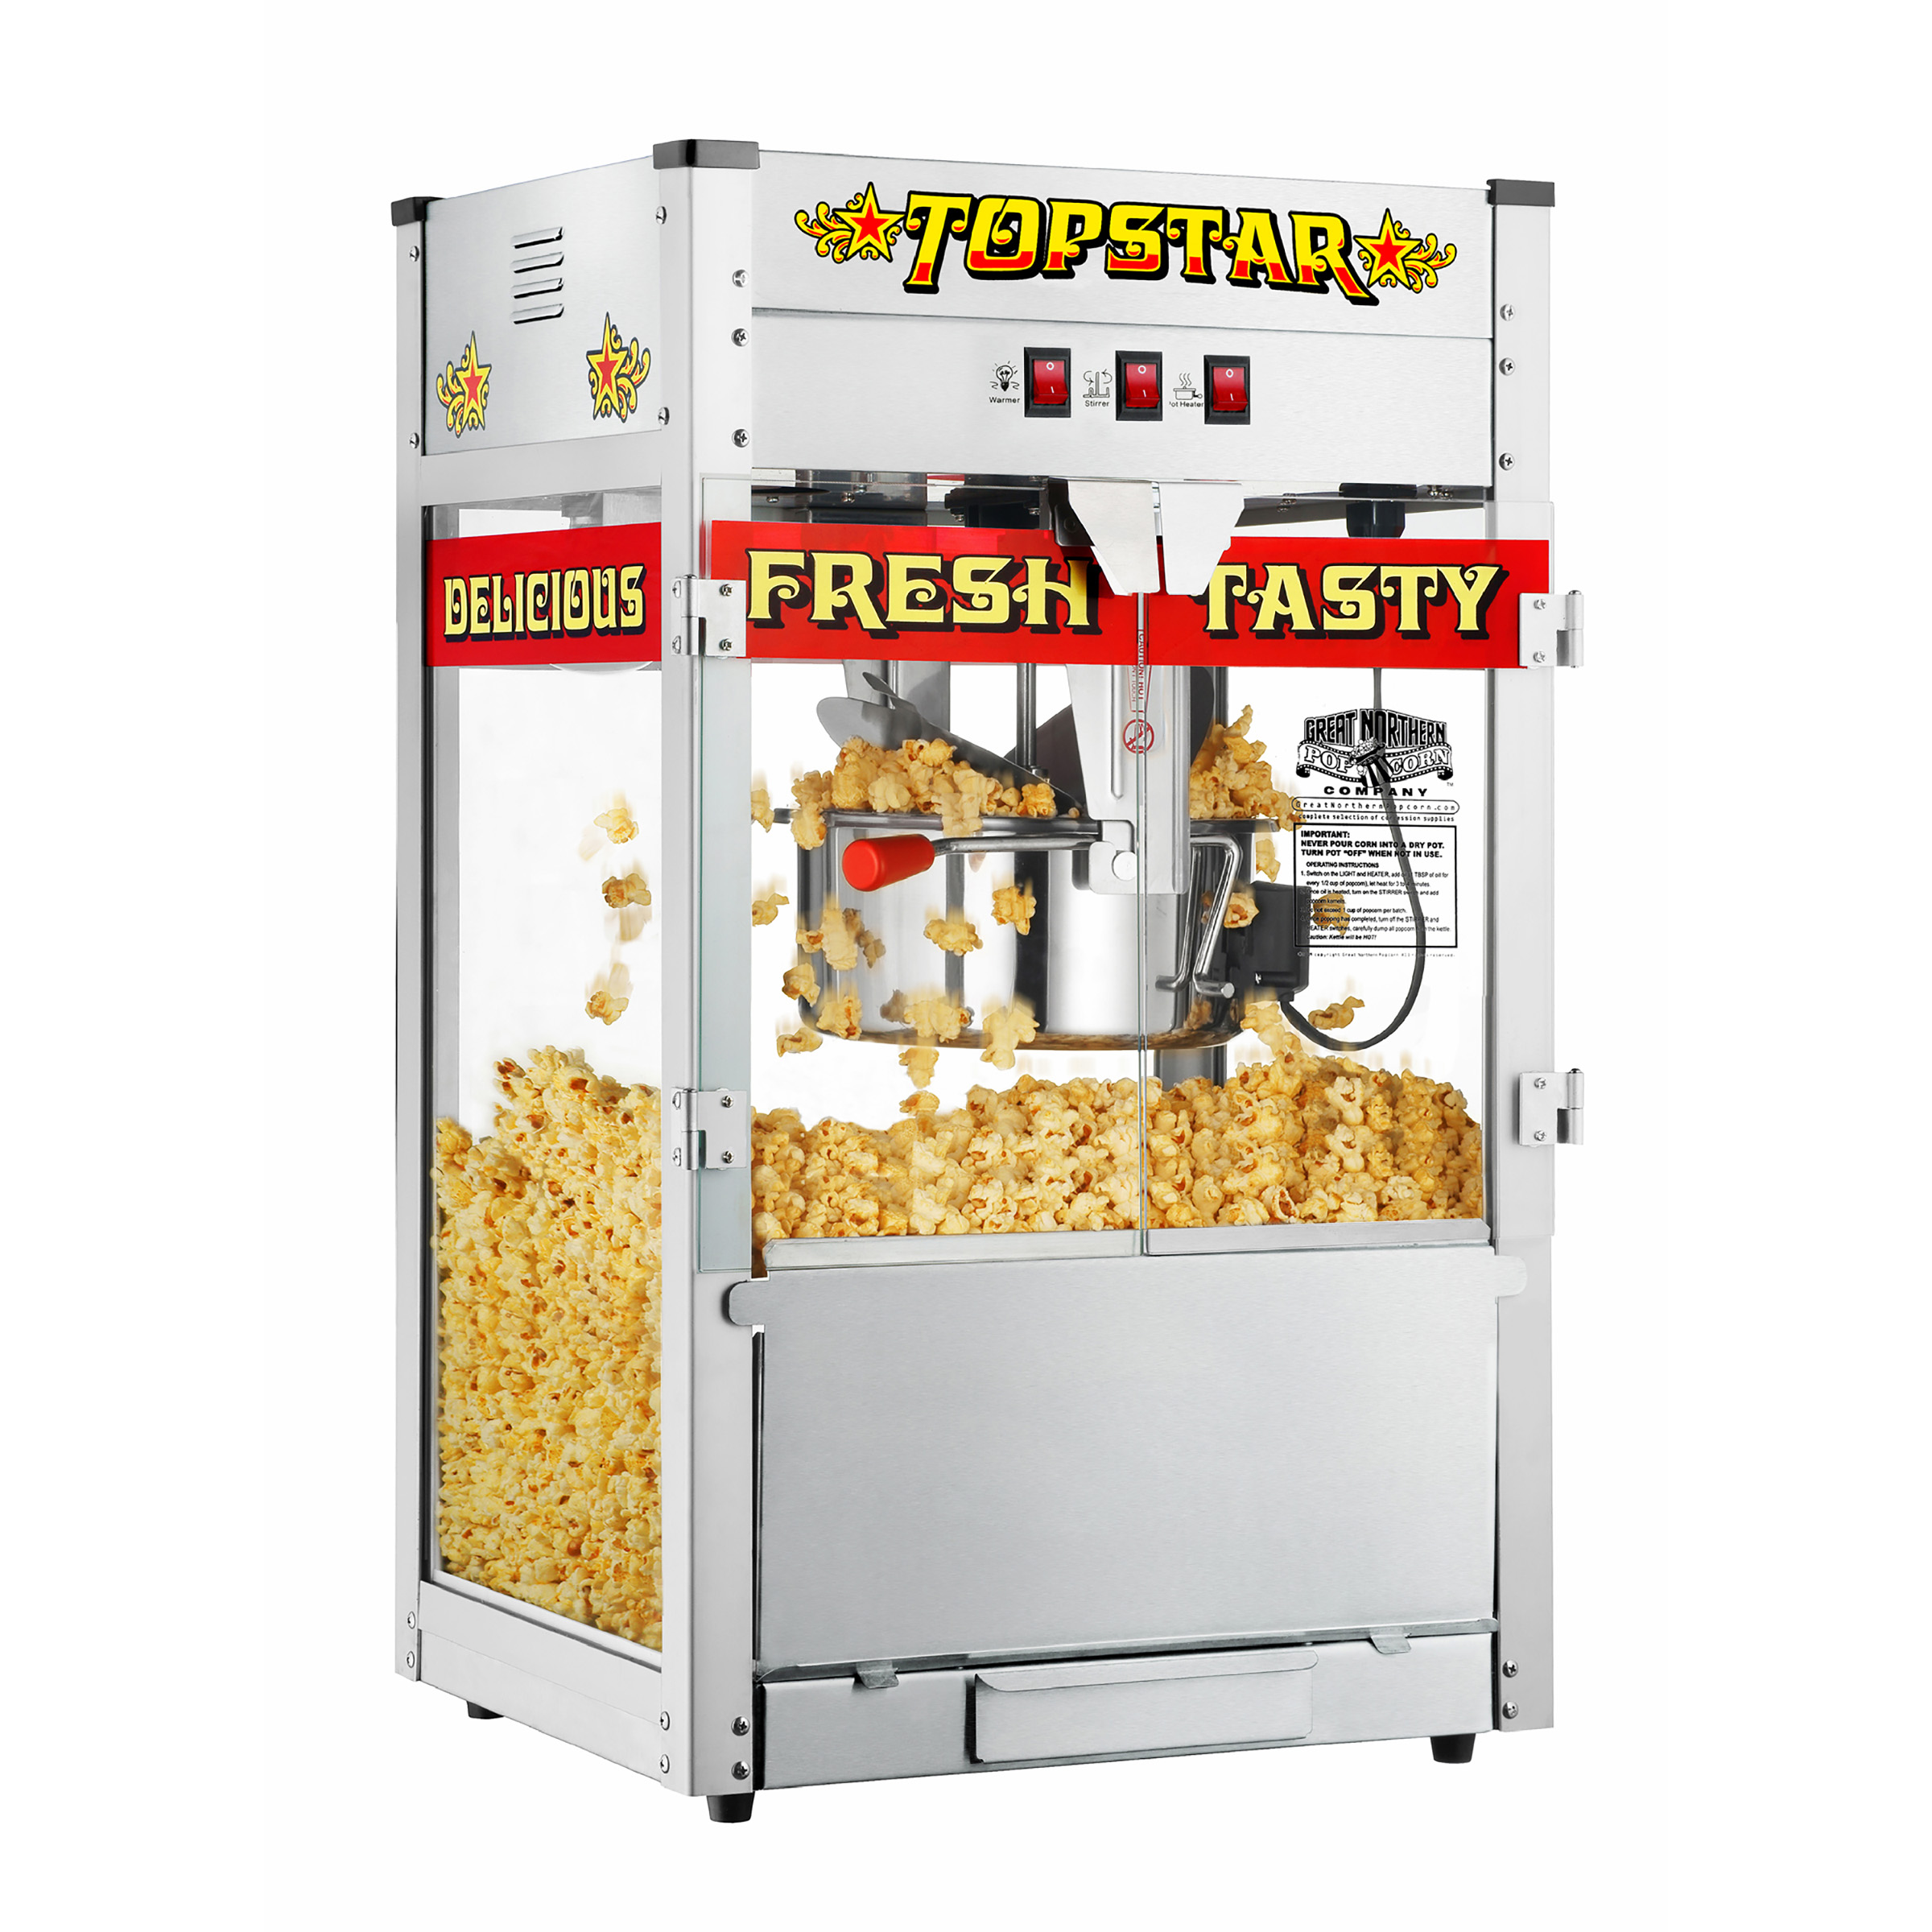 TopStar Commercial Quality Bar Style Popcorn Popper Machine, 12oz by Great Northern Popcorn